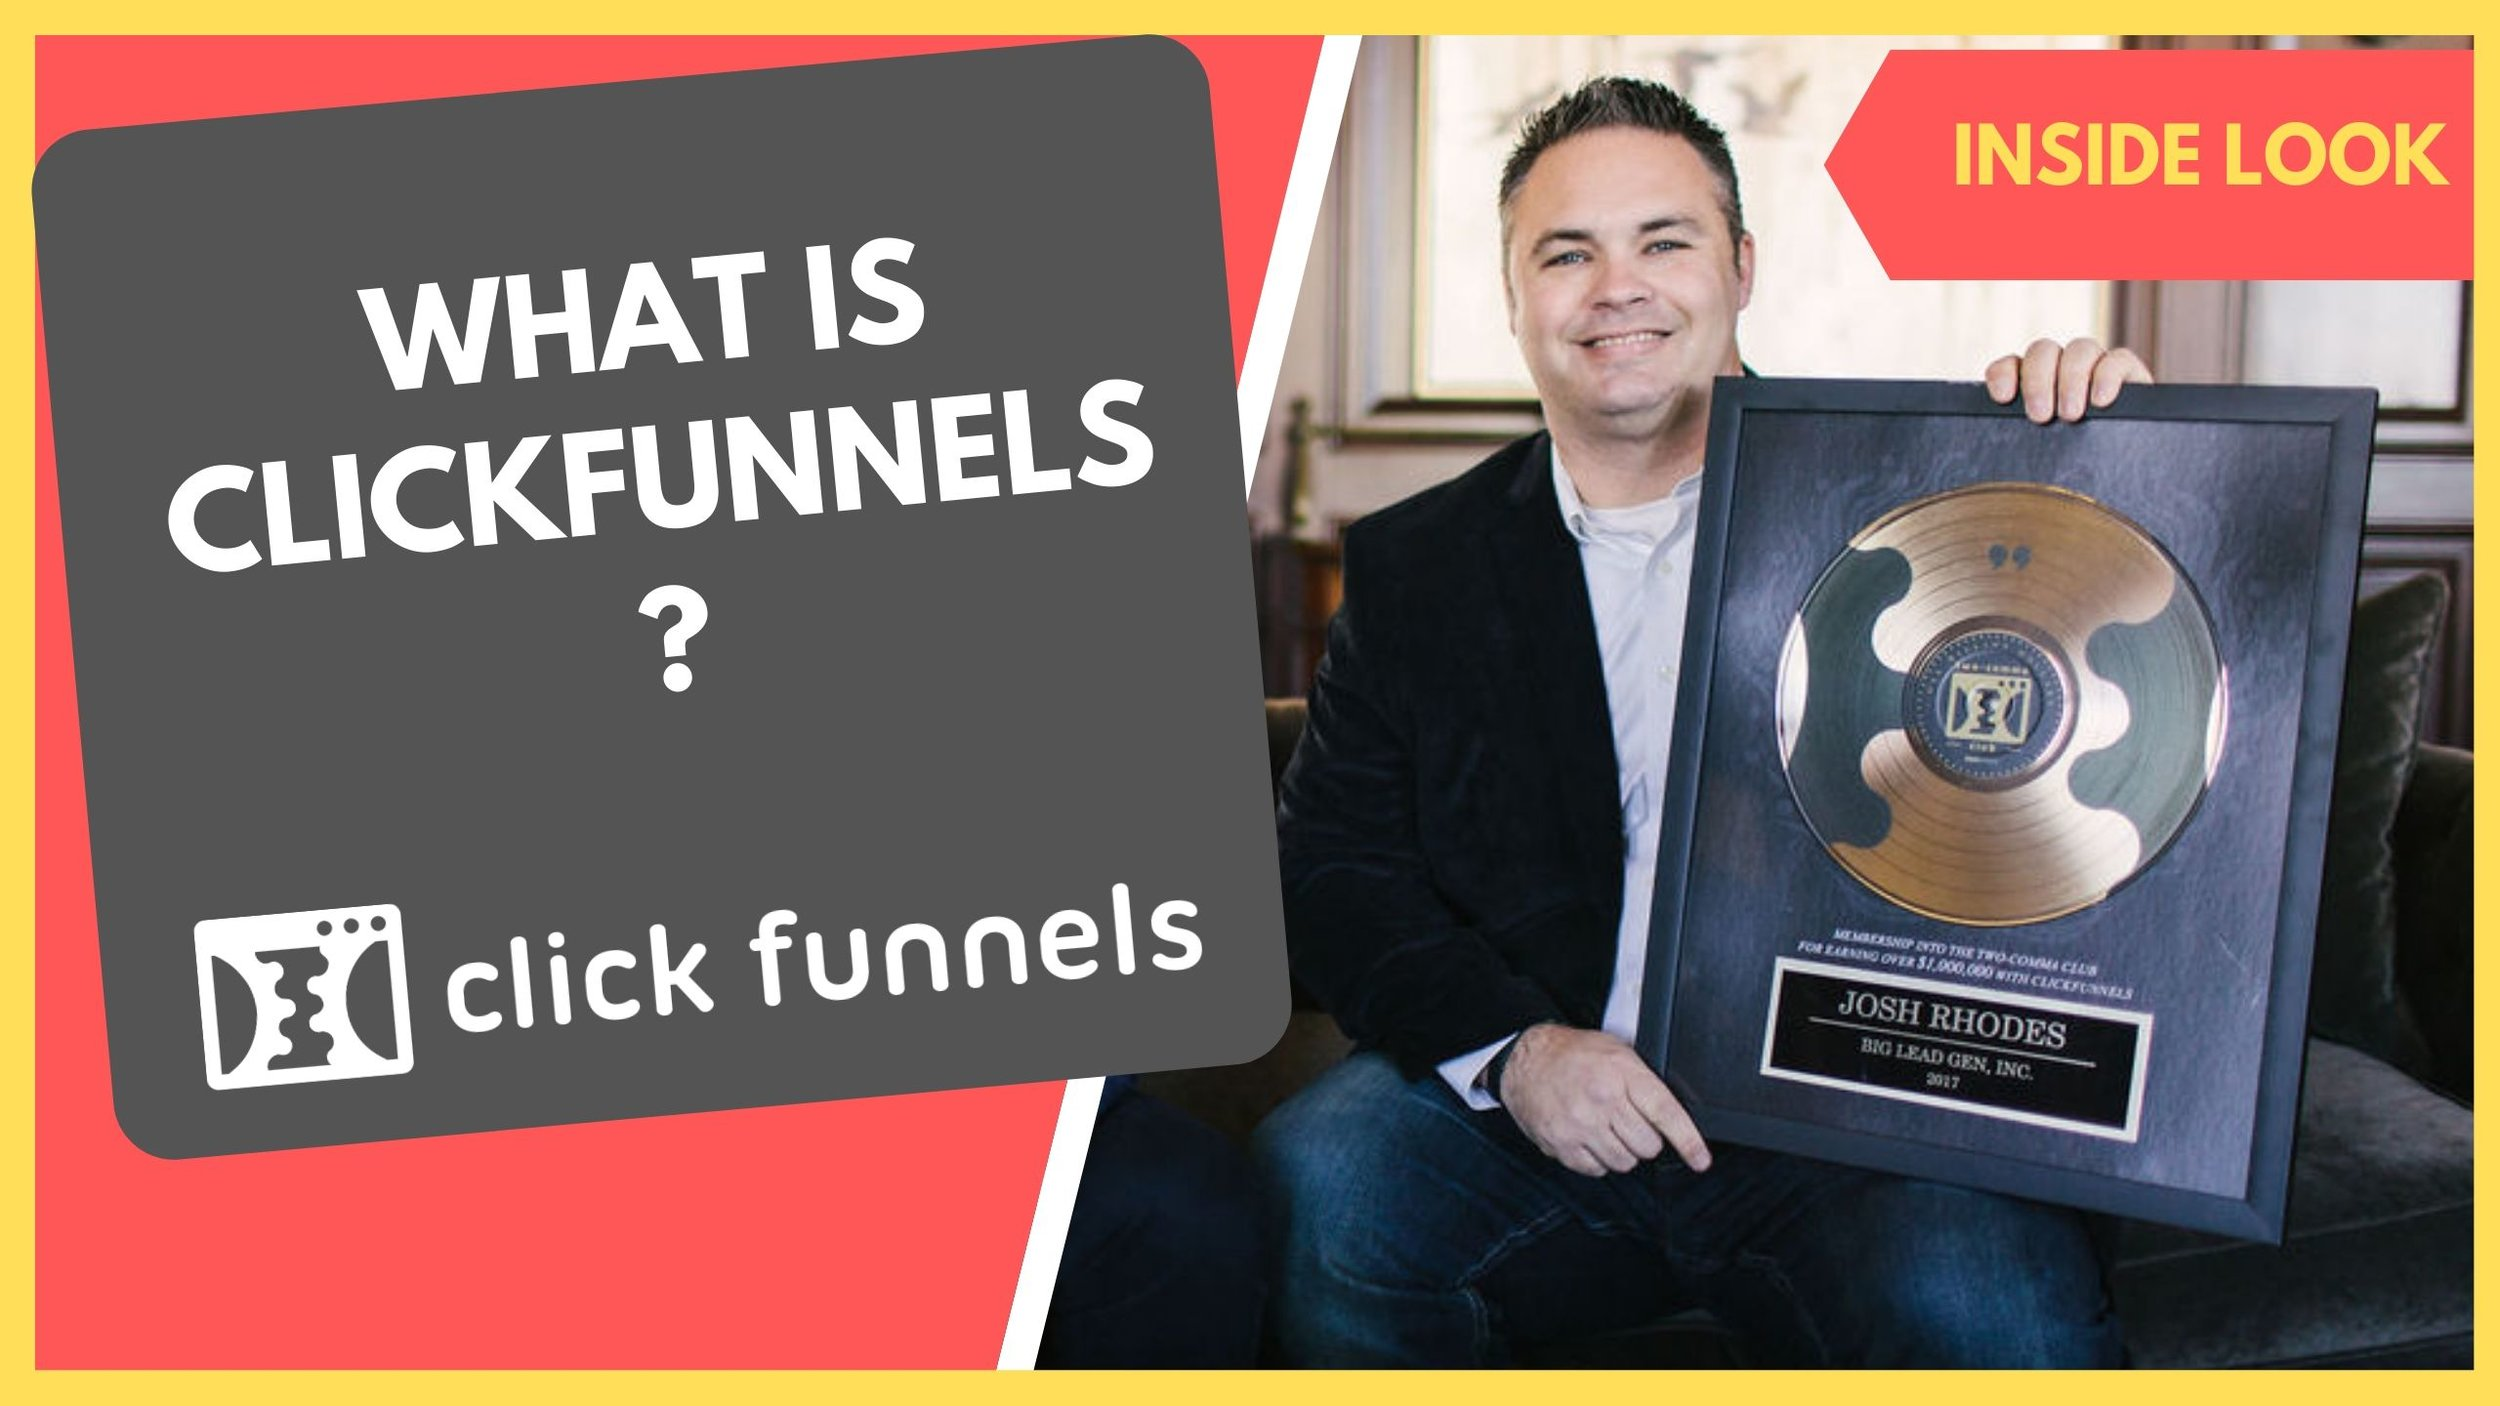 How To Use Clickfunnels For Nonprofit